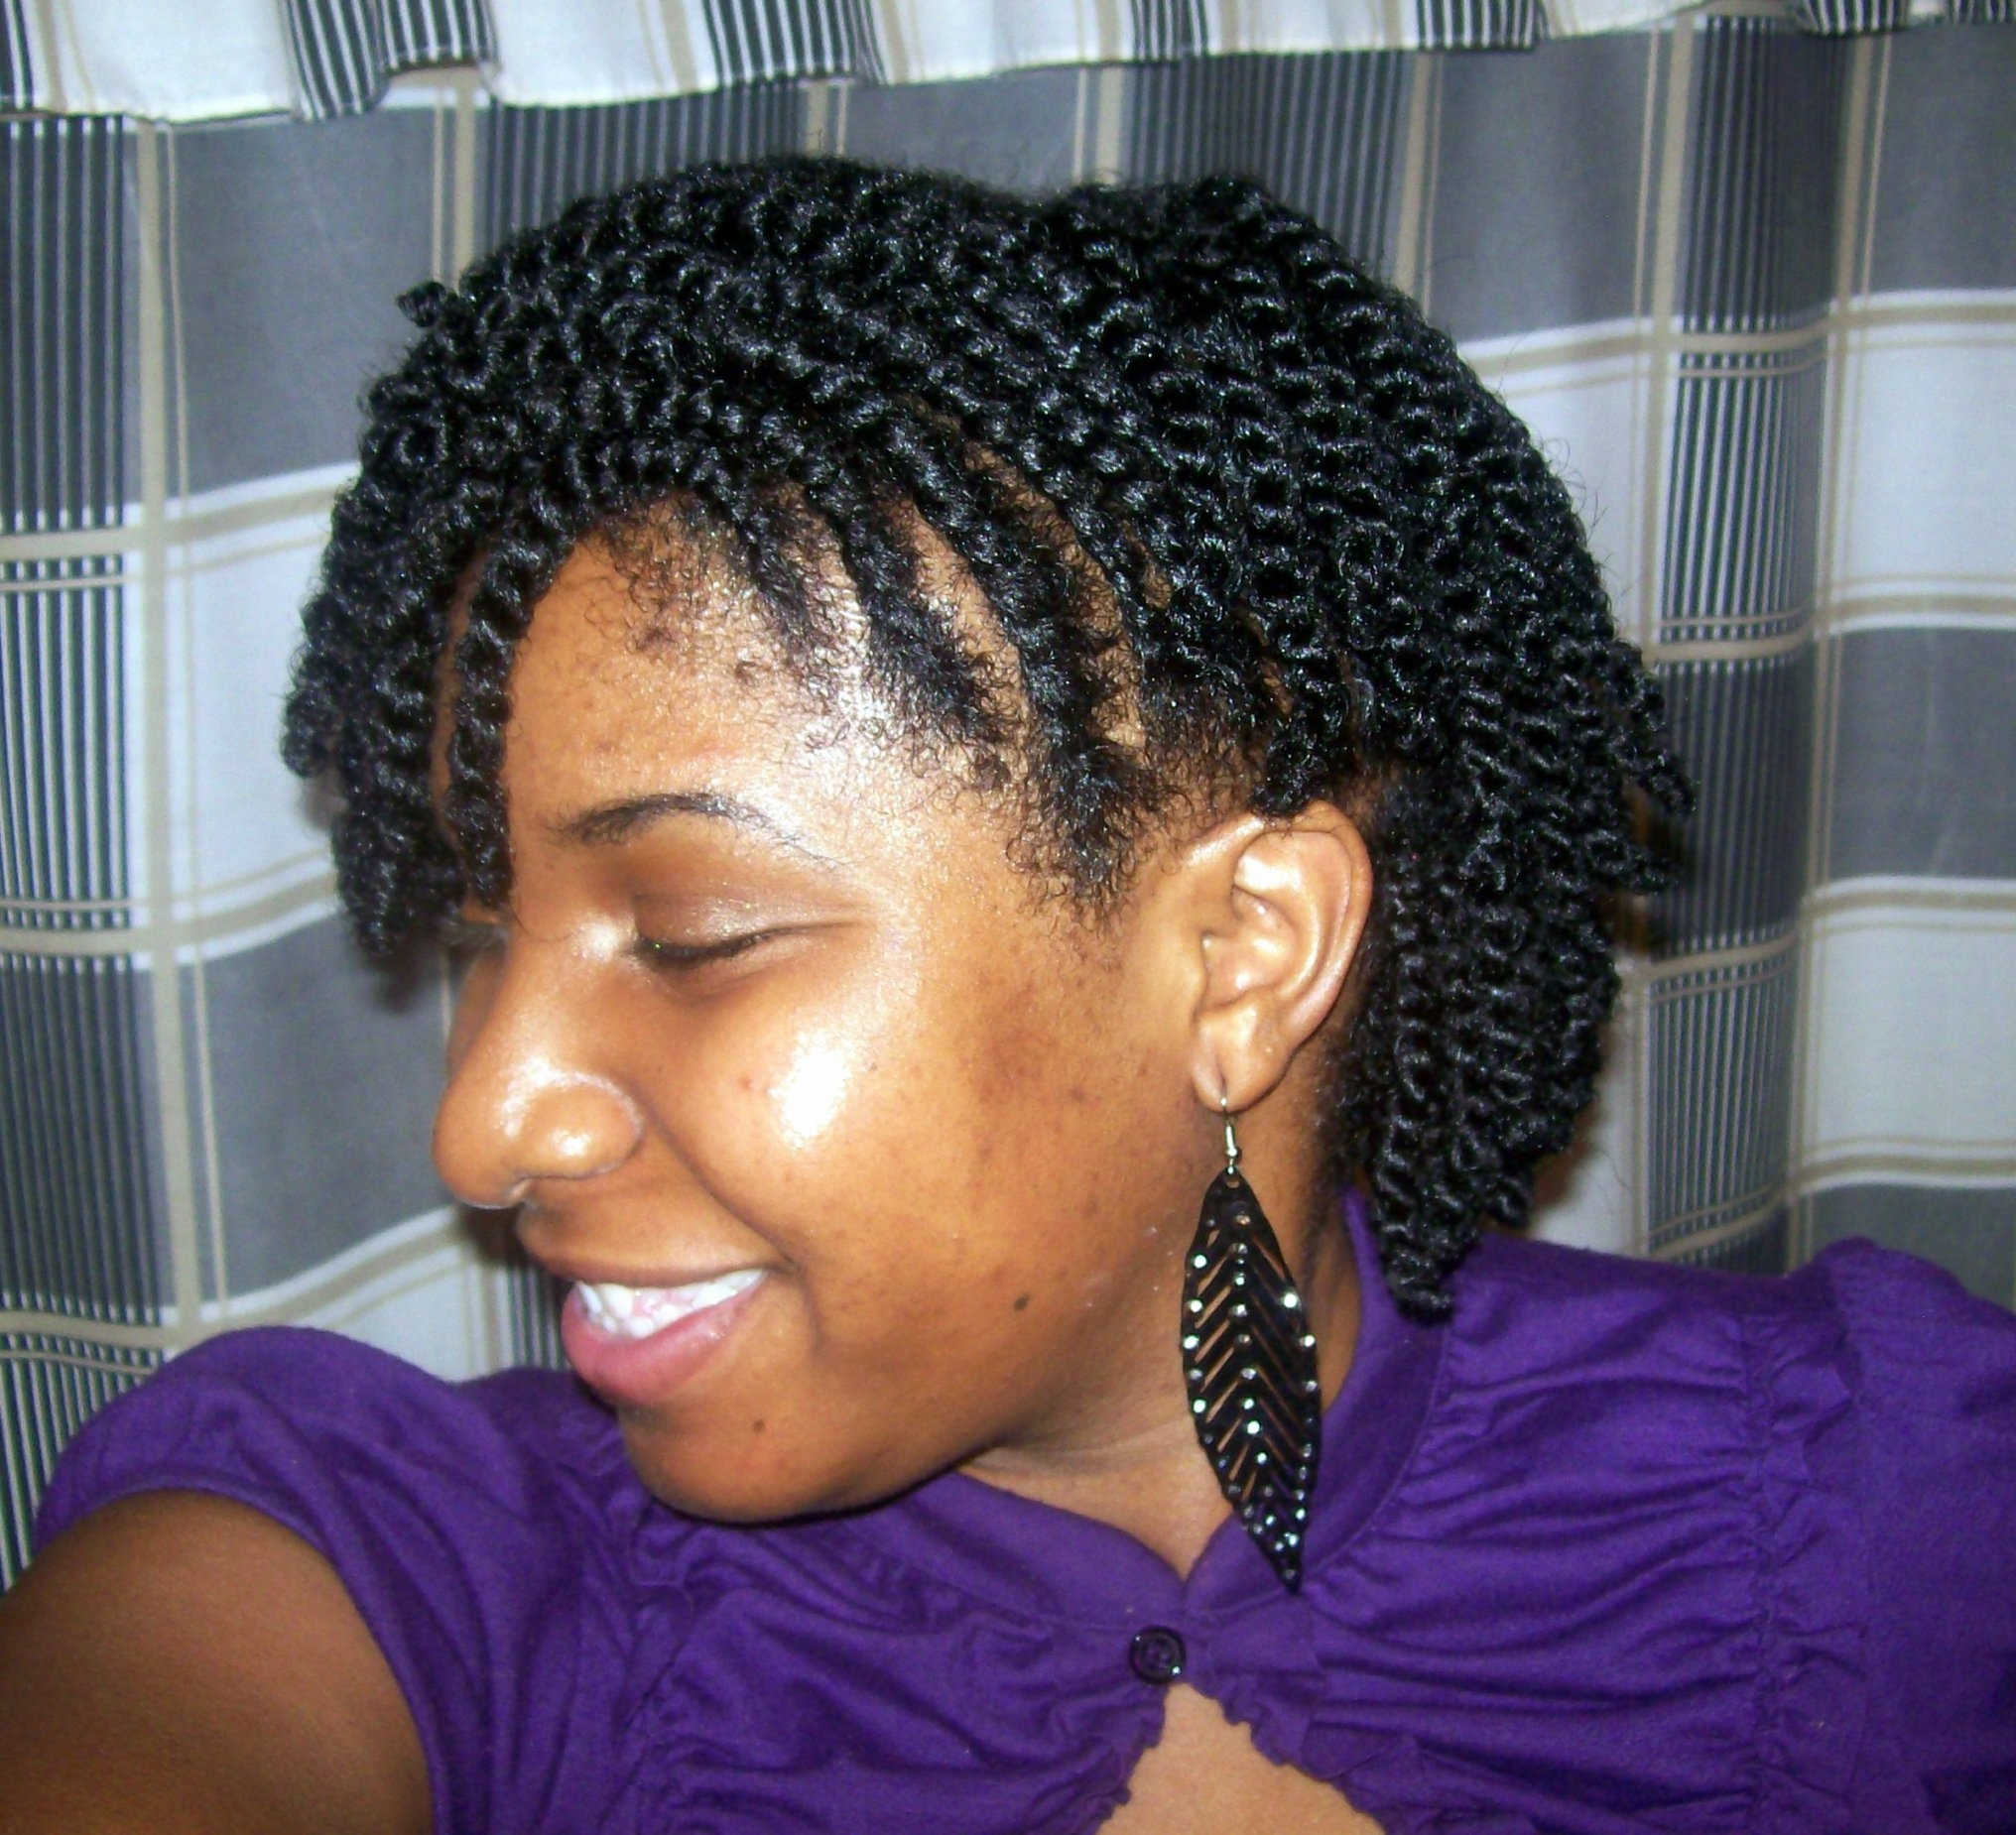 2017 Nigerian Braid Hairstyles With Regard To Kinky Braids Hairstyles In Nigeria Short For Afro Hair Round Faces (View 2 of 15)